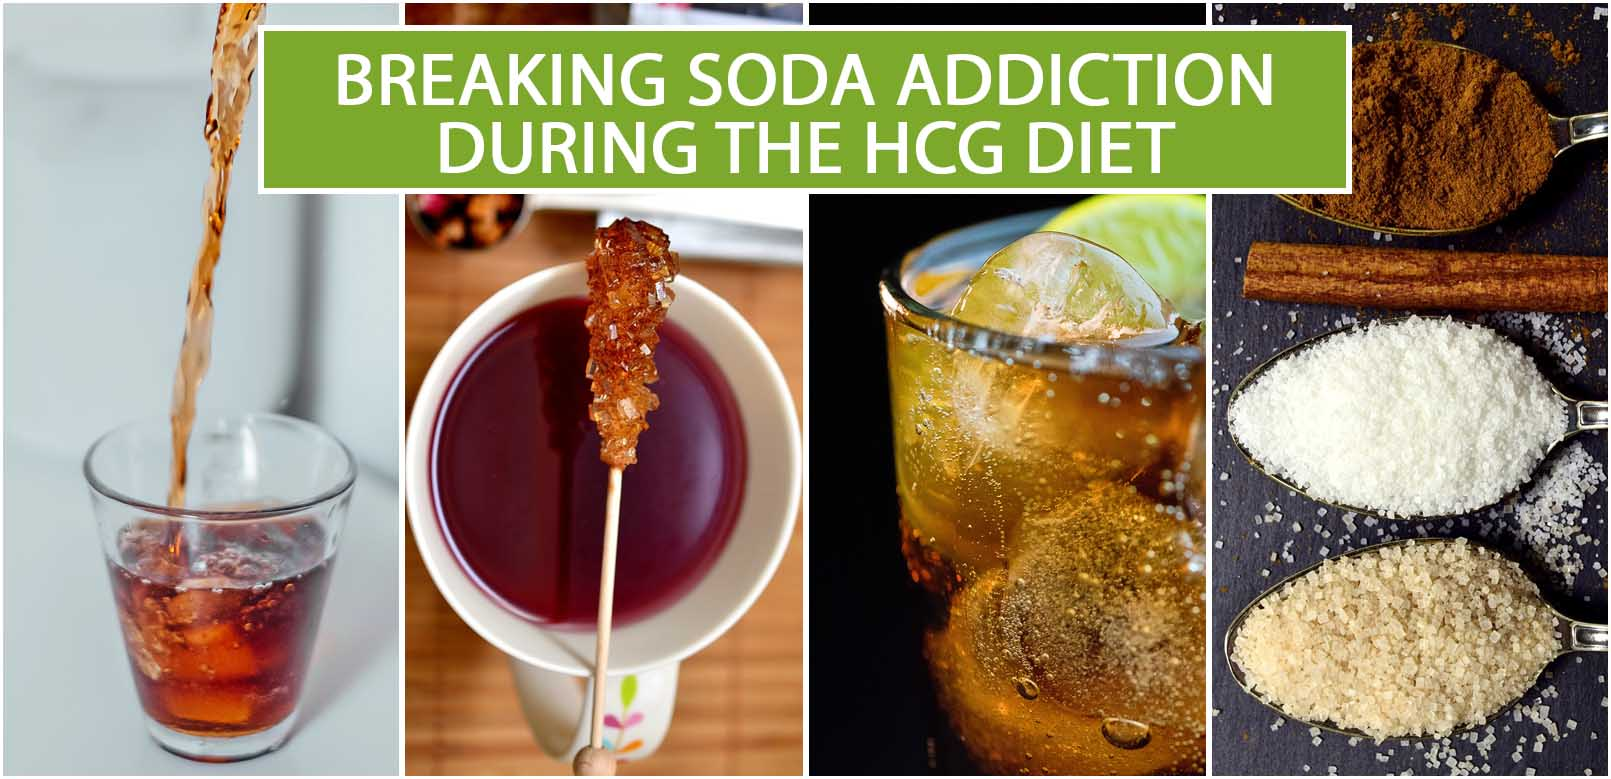 BREAKING SODA ADDICTION DURING THE HCG DIET